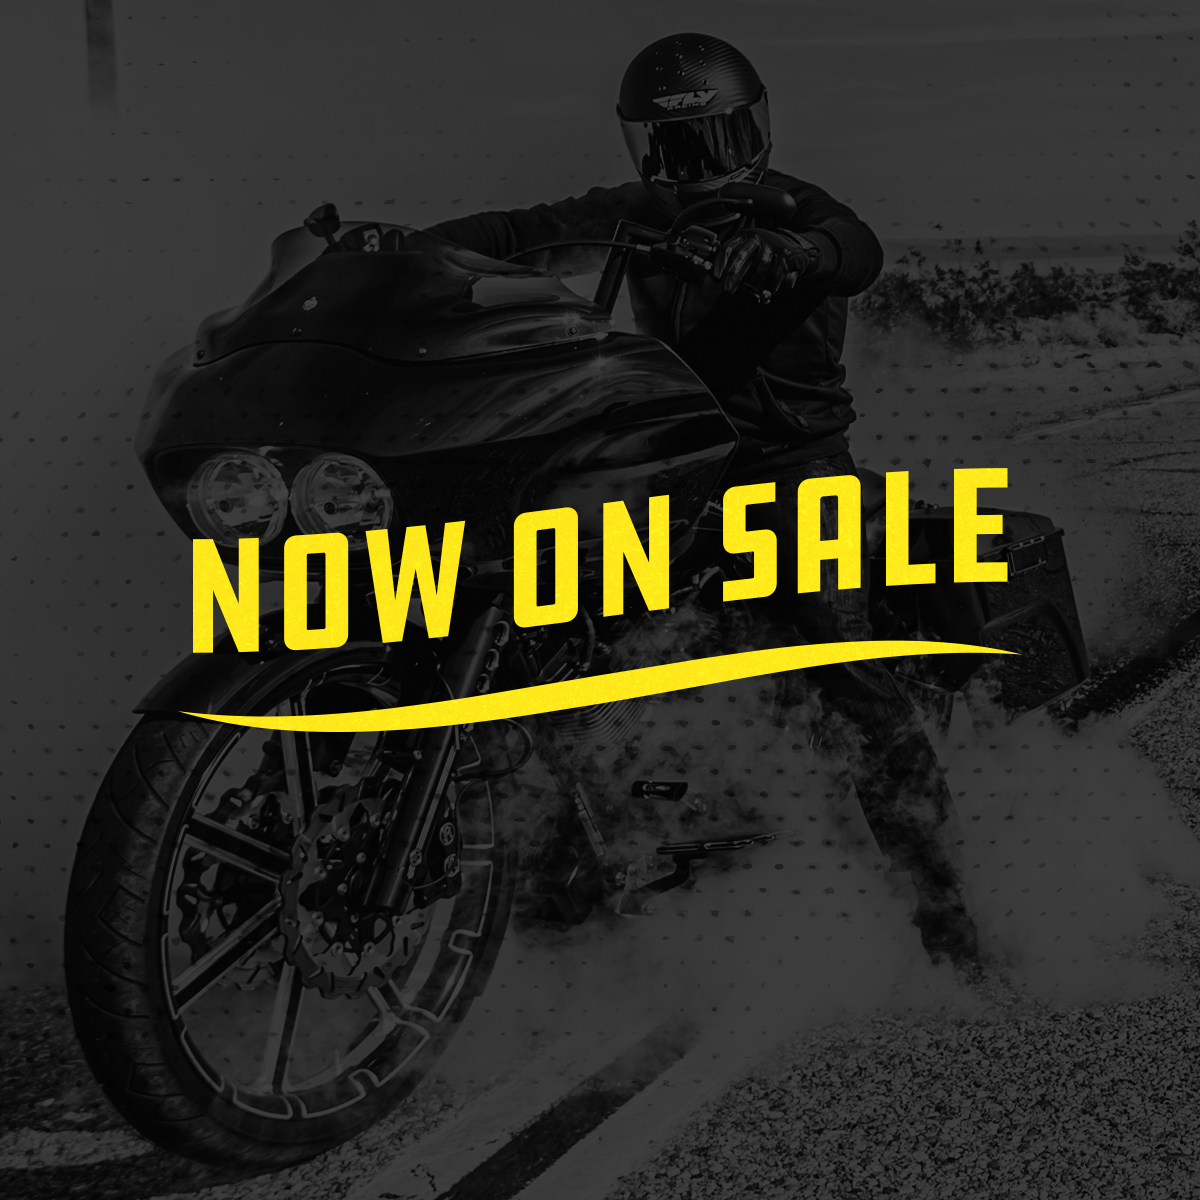 Motorcycle parts and gear on sale now!